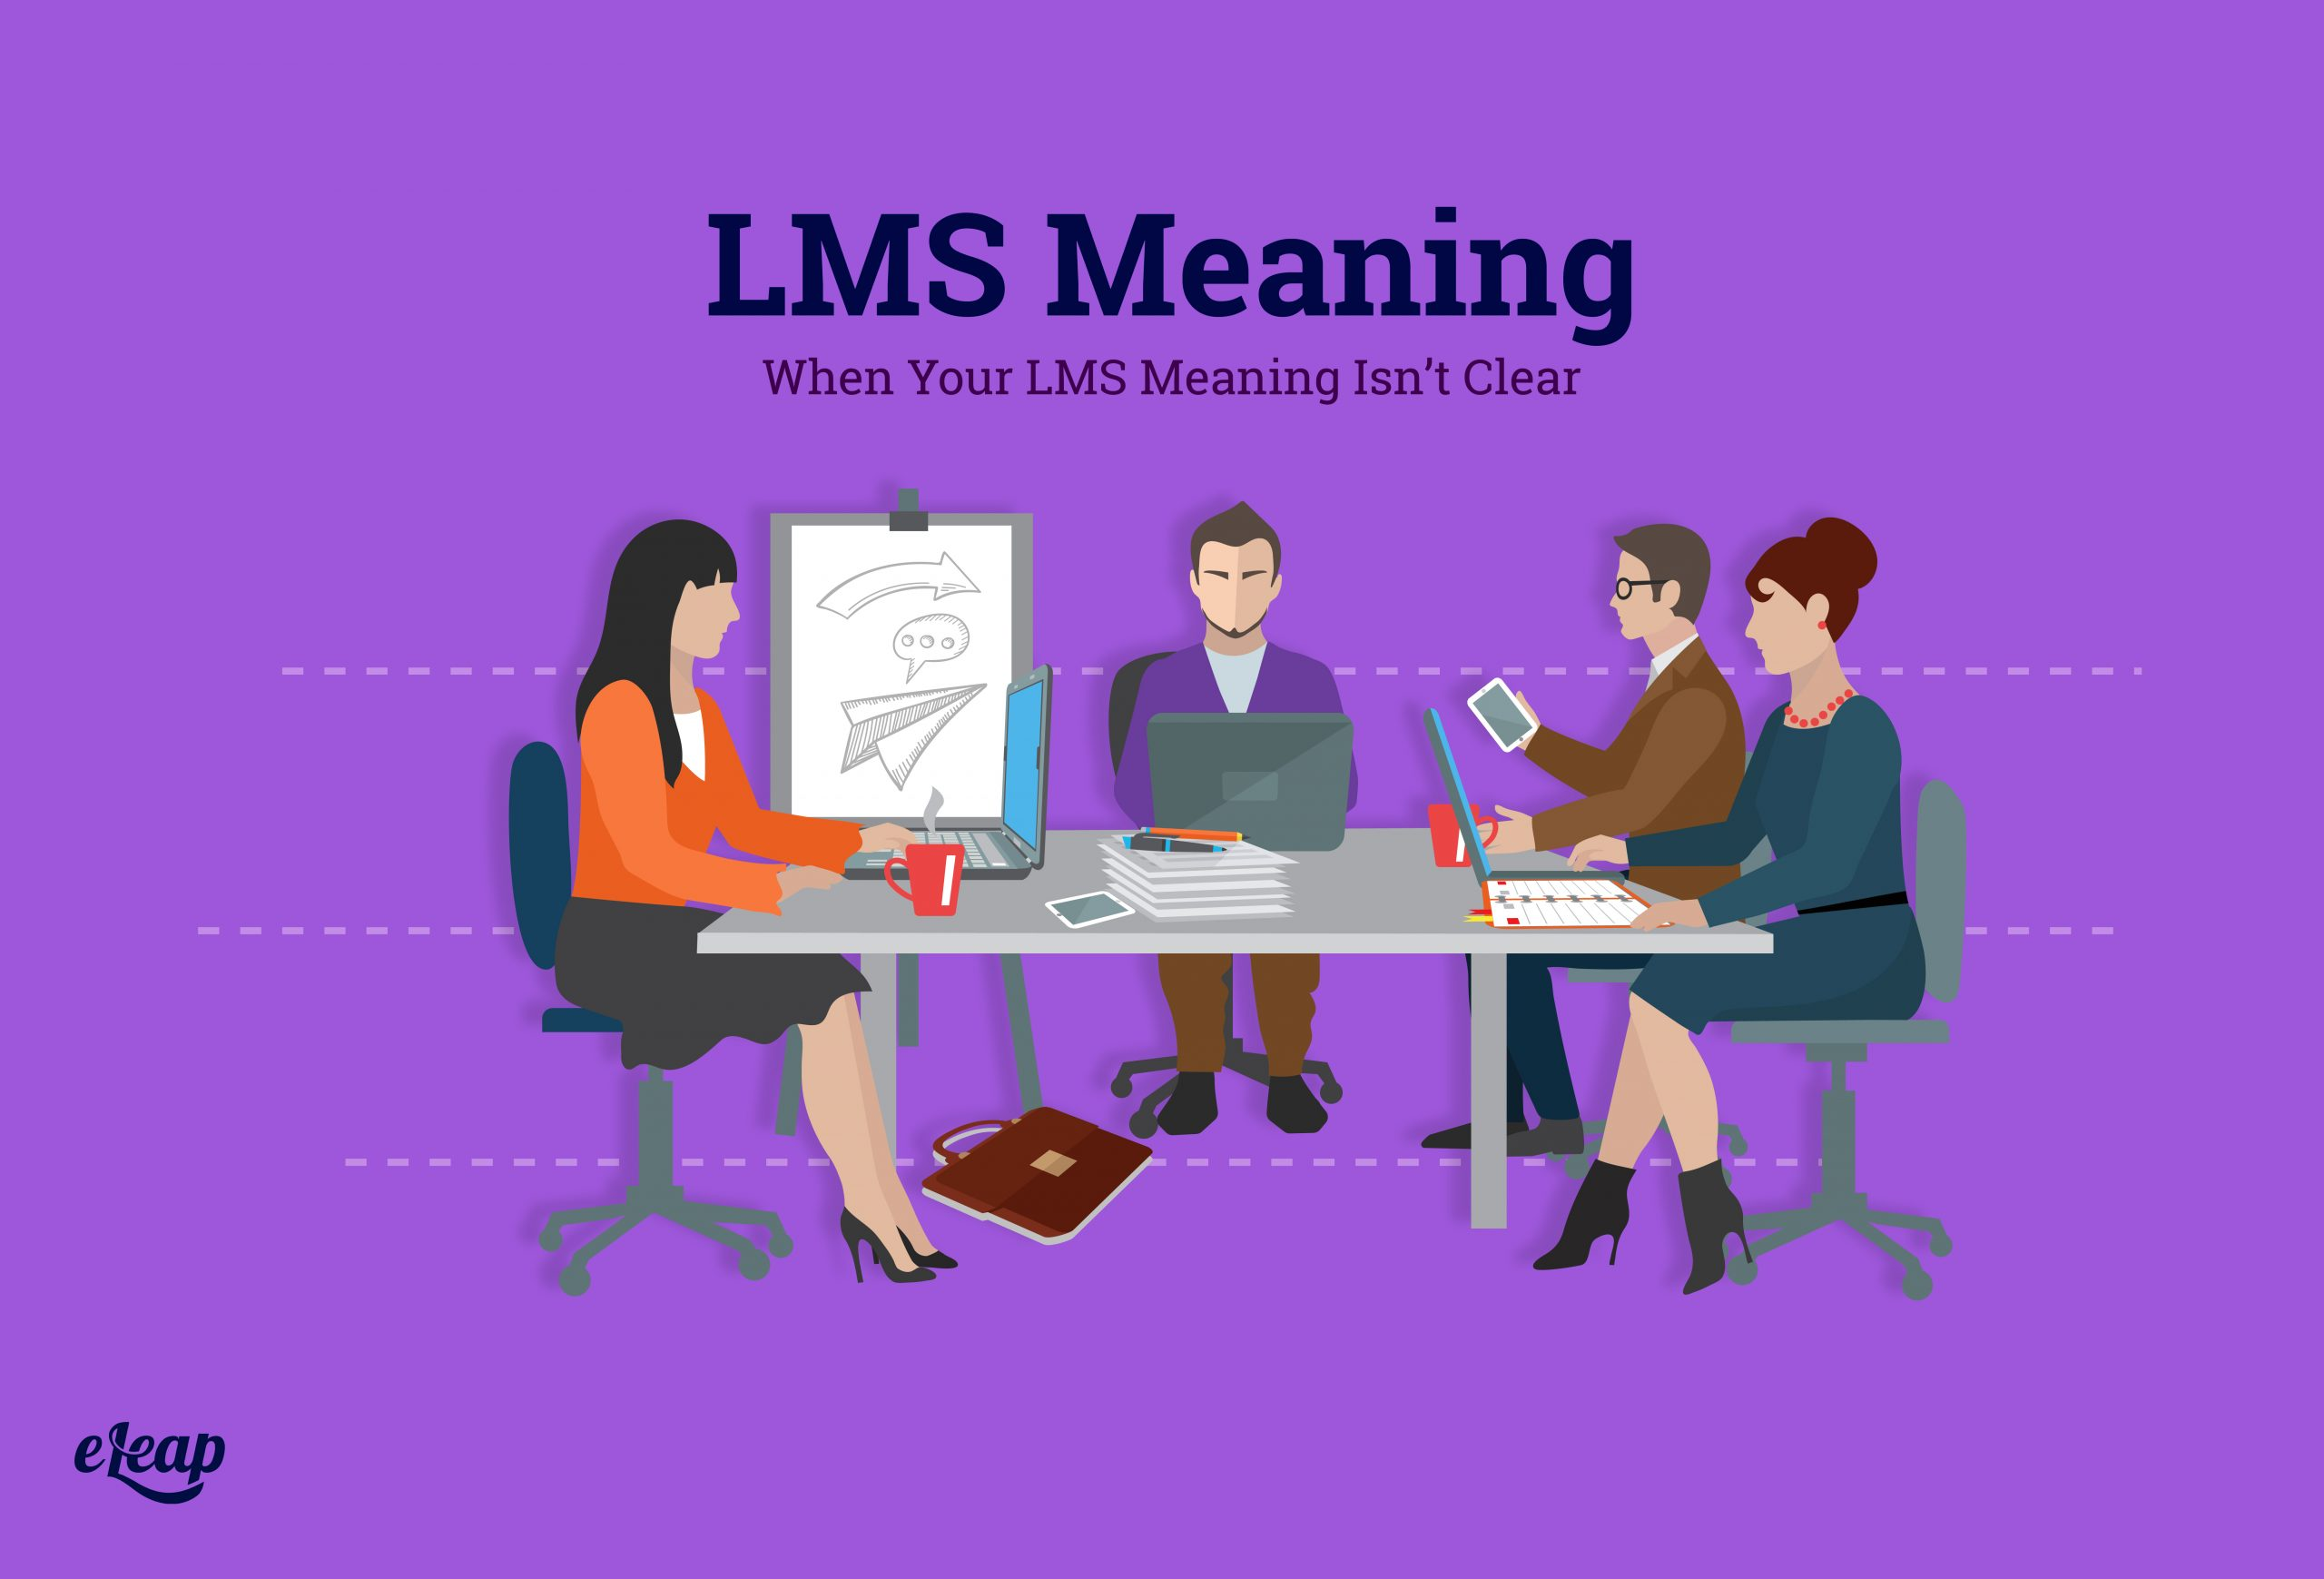 LMS Meaning